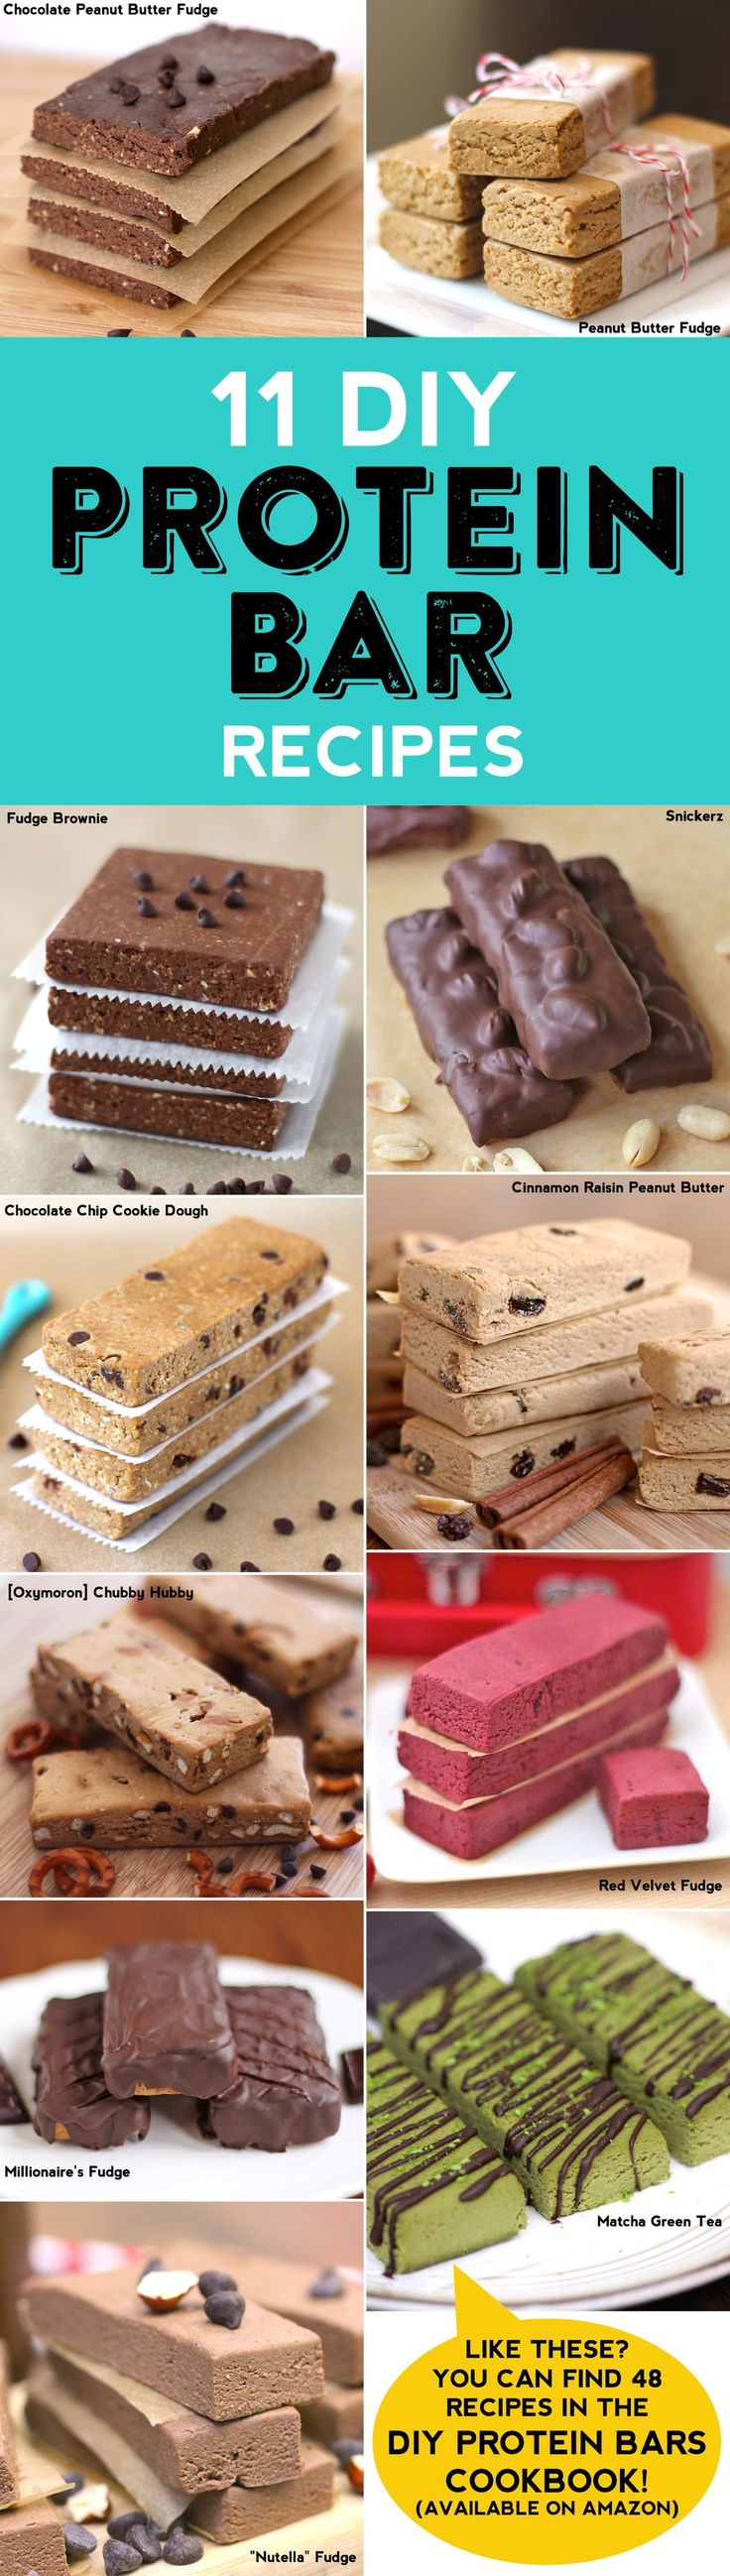 DIY Protein Bars Cookbook: Easy, Healthy, Homemade No-Bake Treats That Taste Like Dessert, But Just Happen To Be Packed With Protein! (Options for everyone: refined sugar free, low fat, low carb, high protein, high fiber, gluten free, dairy free, vegan) #diabetes #recipes #protein